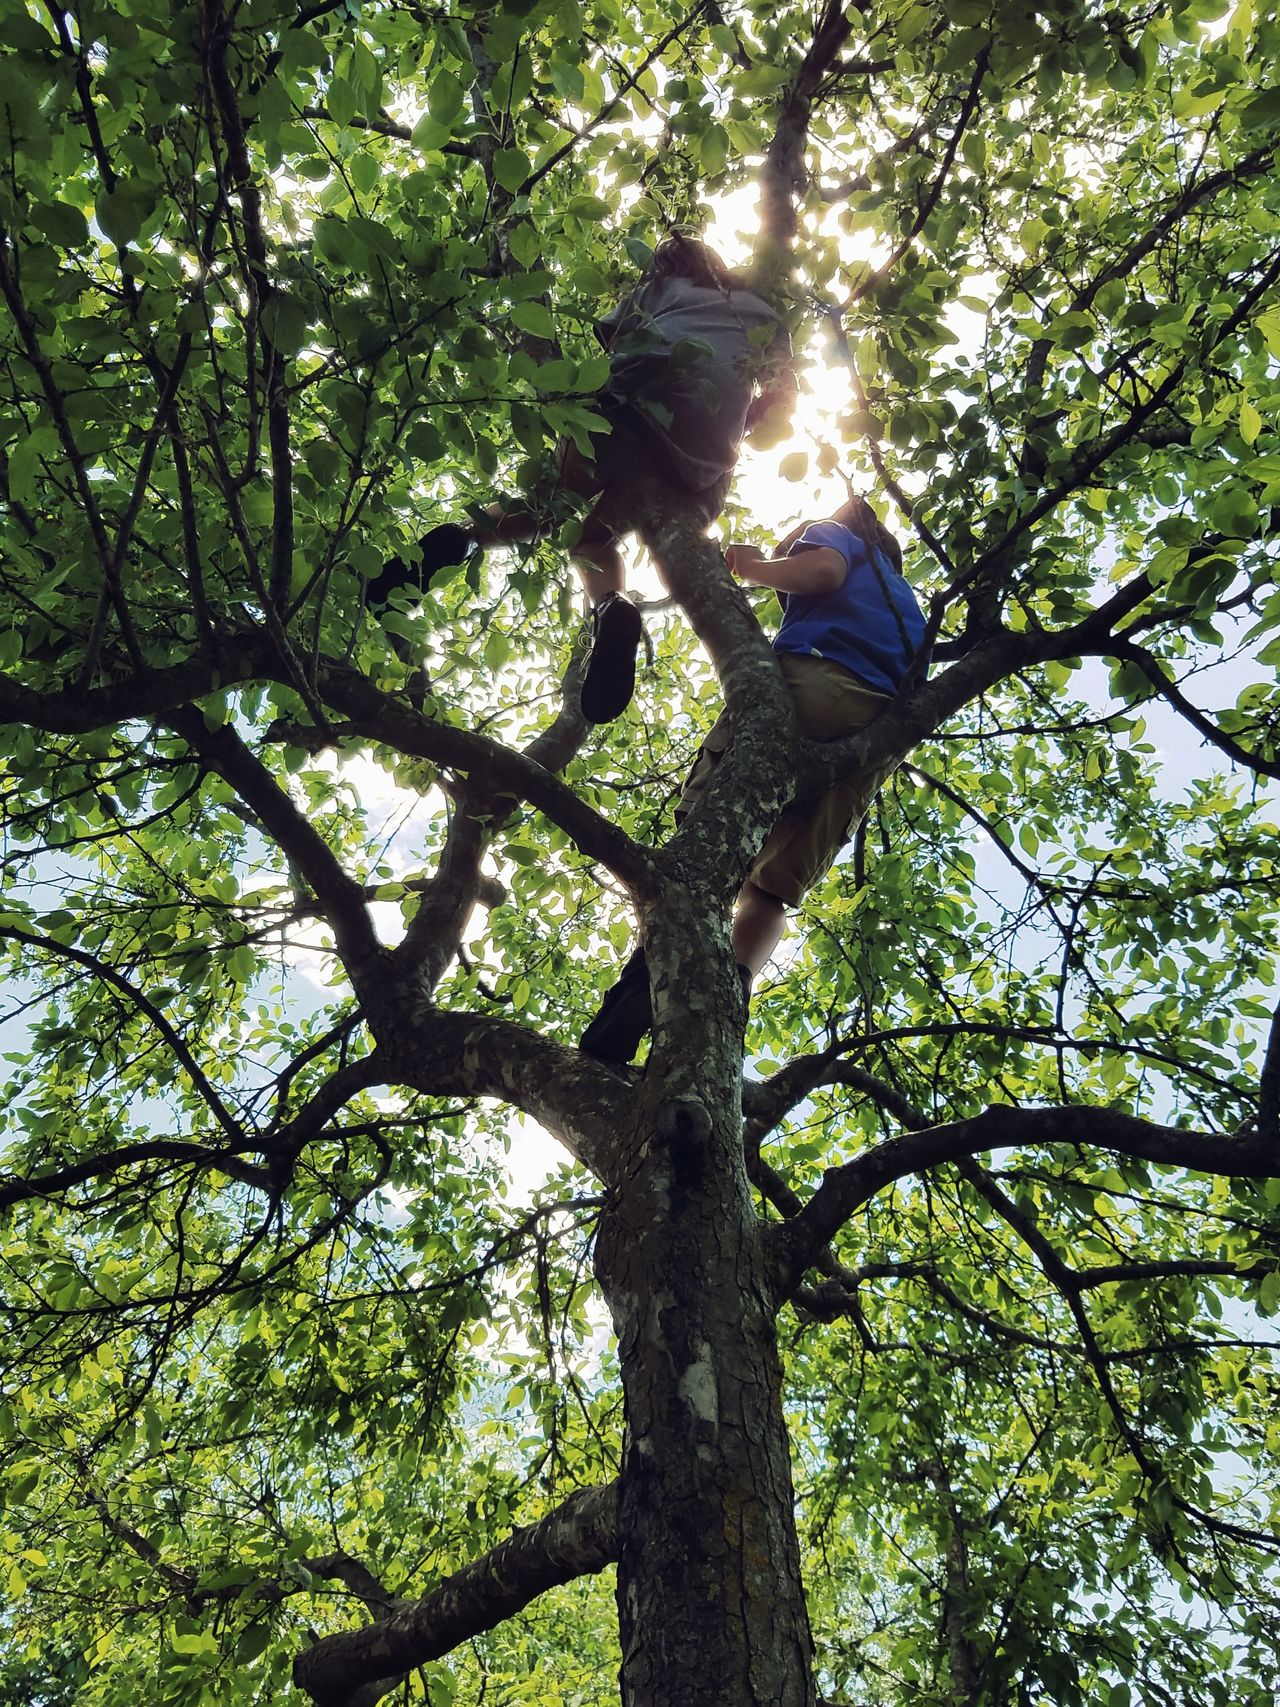 Summer is for tree climbing Tree Growth Outdoors Sunlight Nature Green Color Samsung Galaxy S7 Edge Android Photography Getting Inspired EyeEm EyeEm Best Shots Leaf Green Color